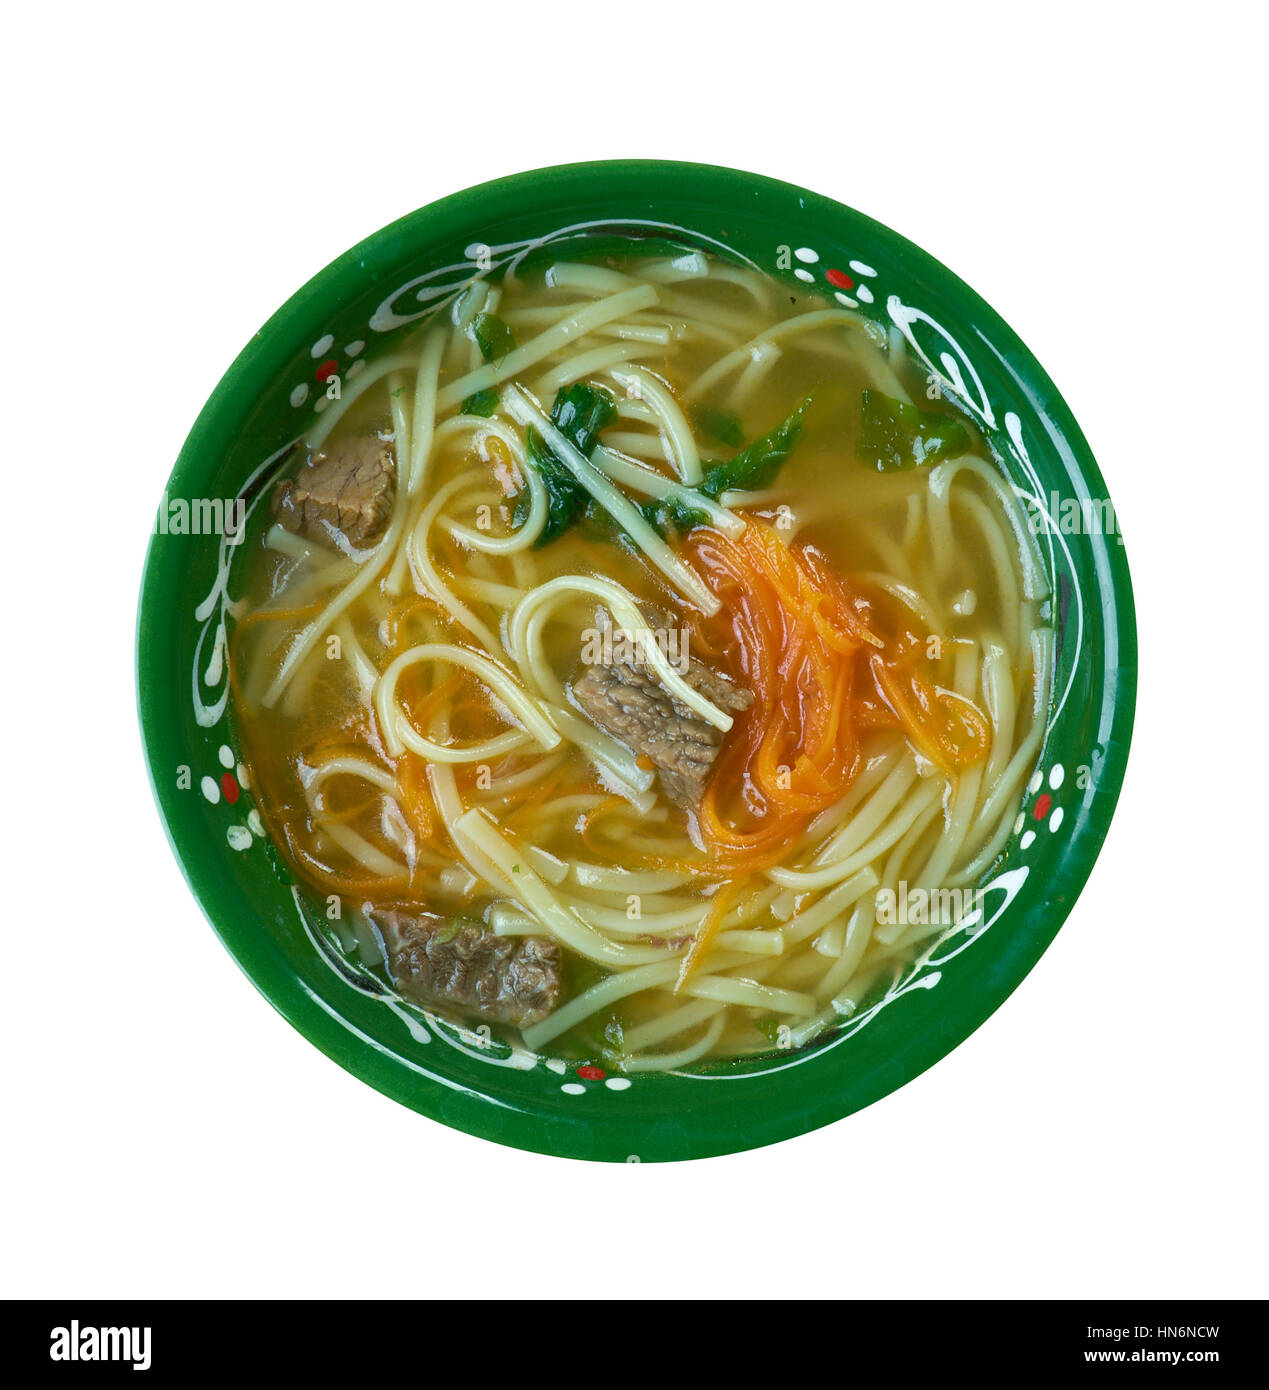 Thukpa - Tibetan noodle soup, which originated in the eastern part of Tibet. - Stock Image